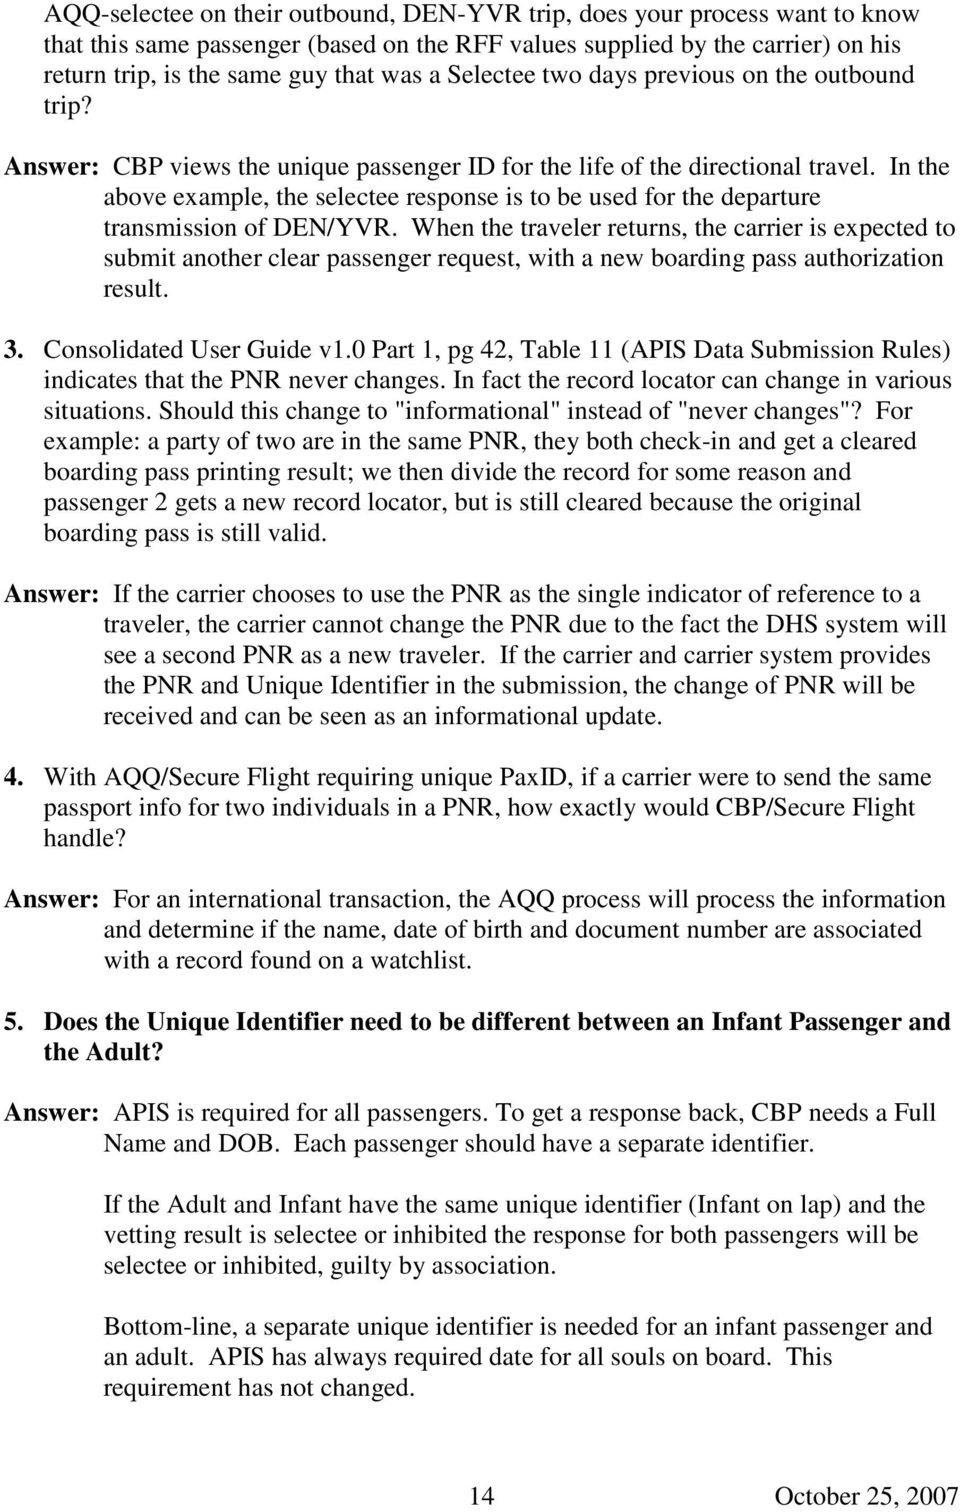 Apis Frequently Asked Questions Pdf